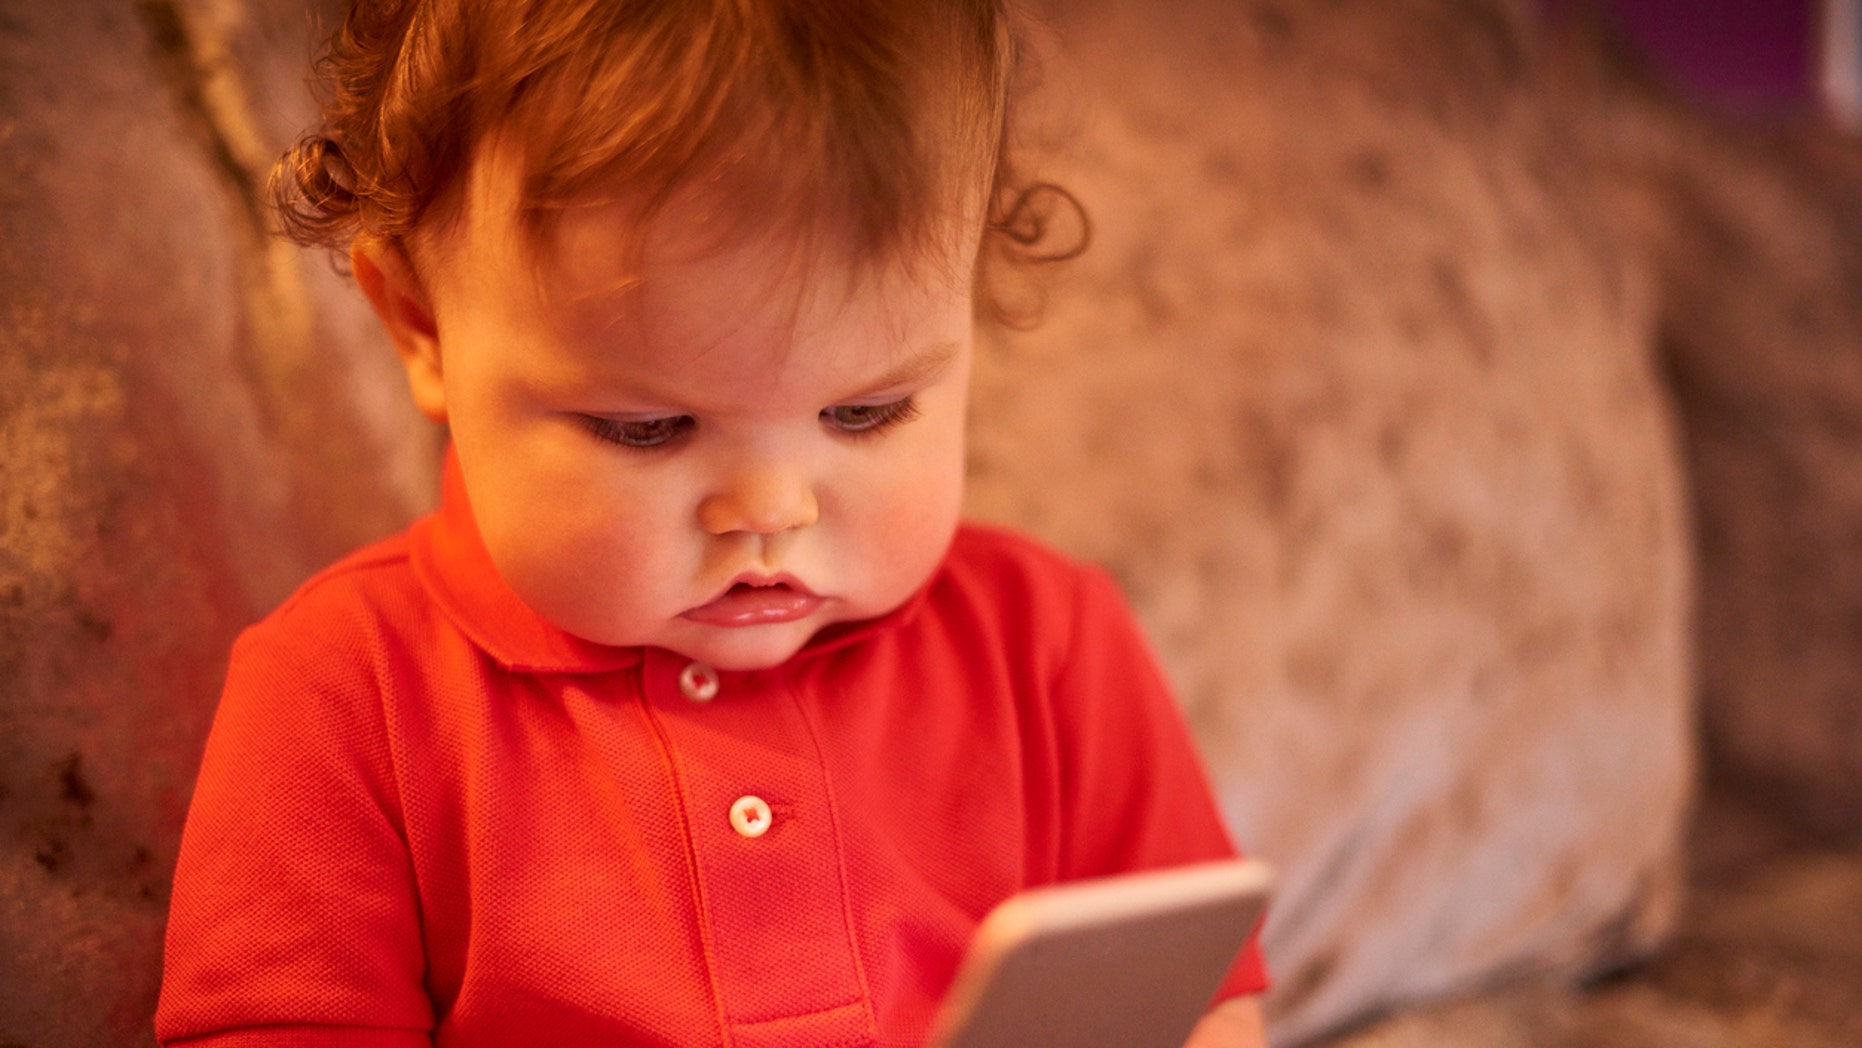 Could technology slow early child development?